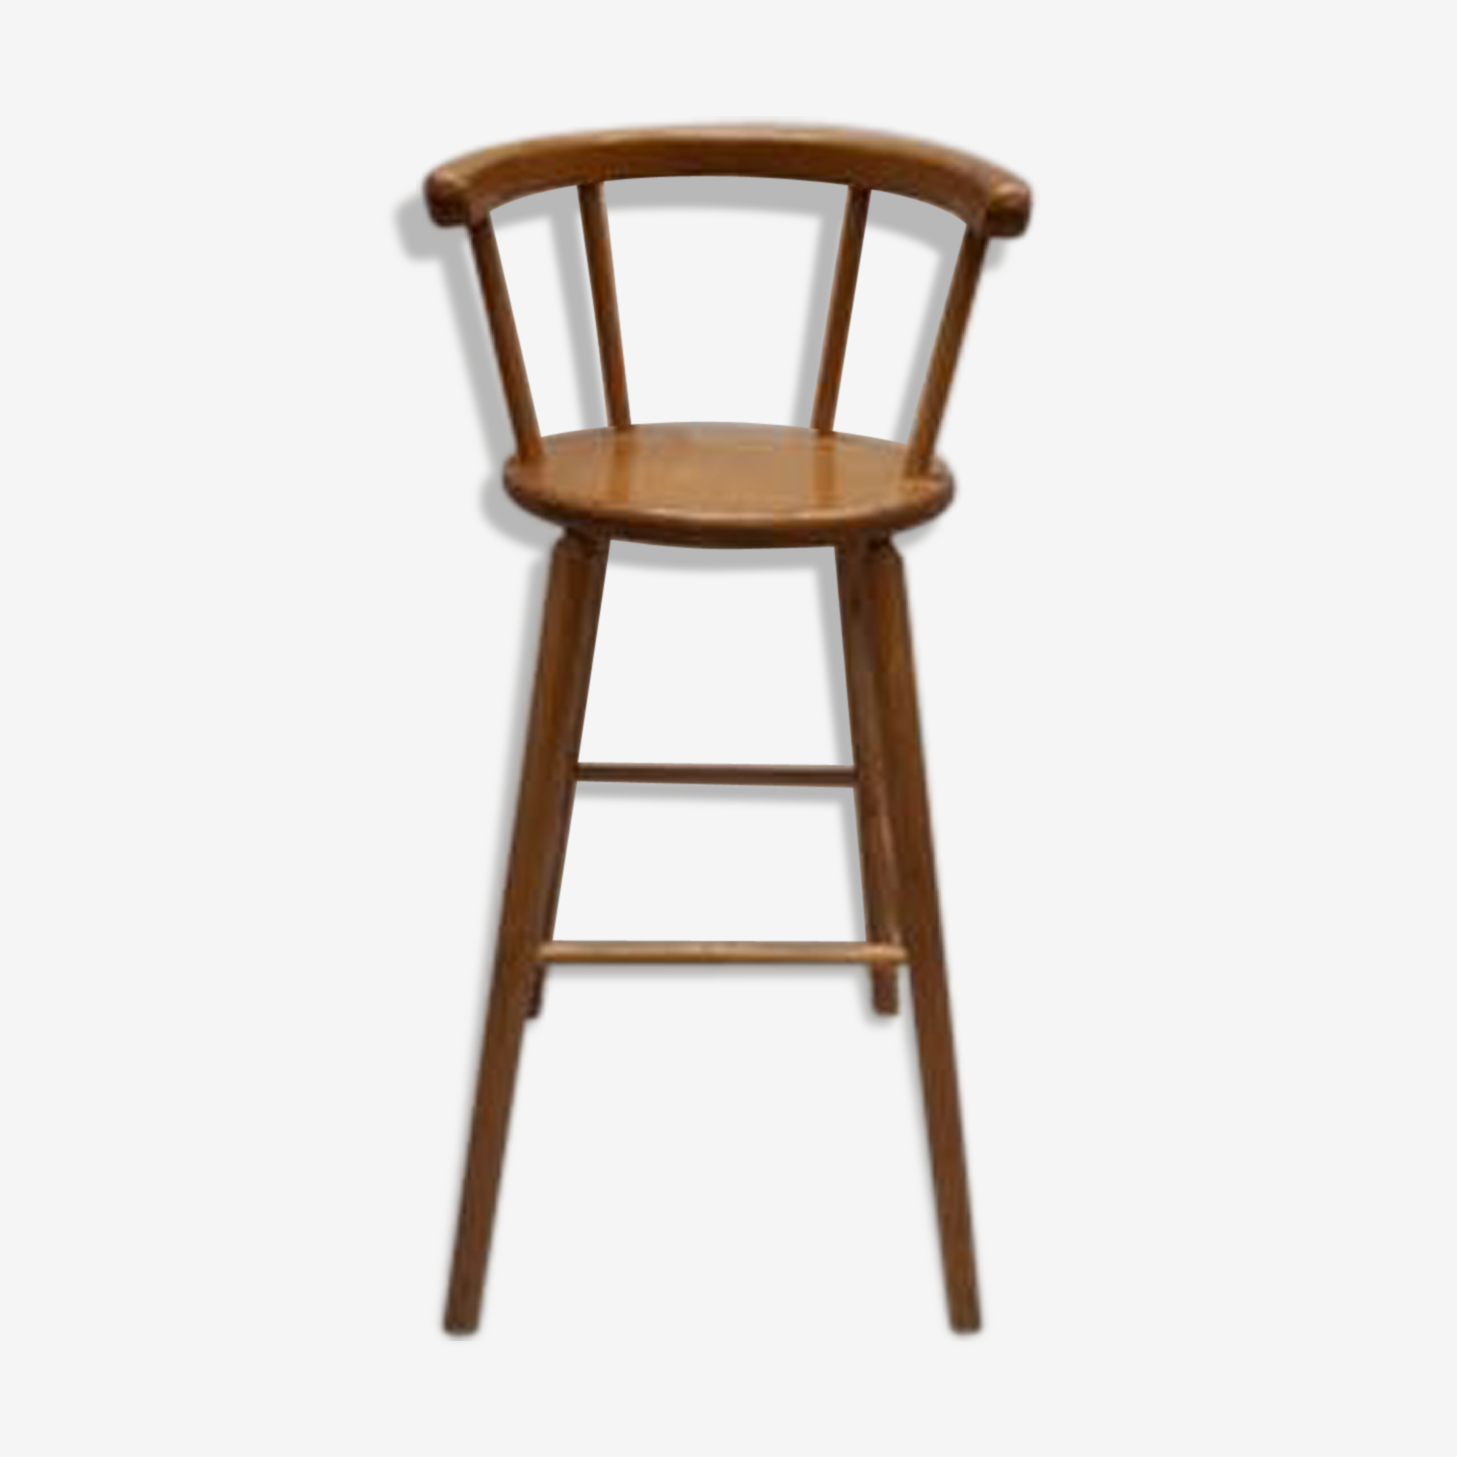 Dutch wooden high chair